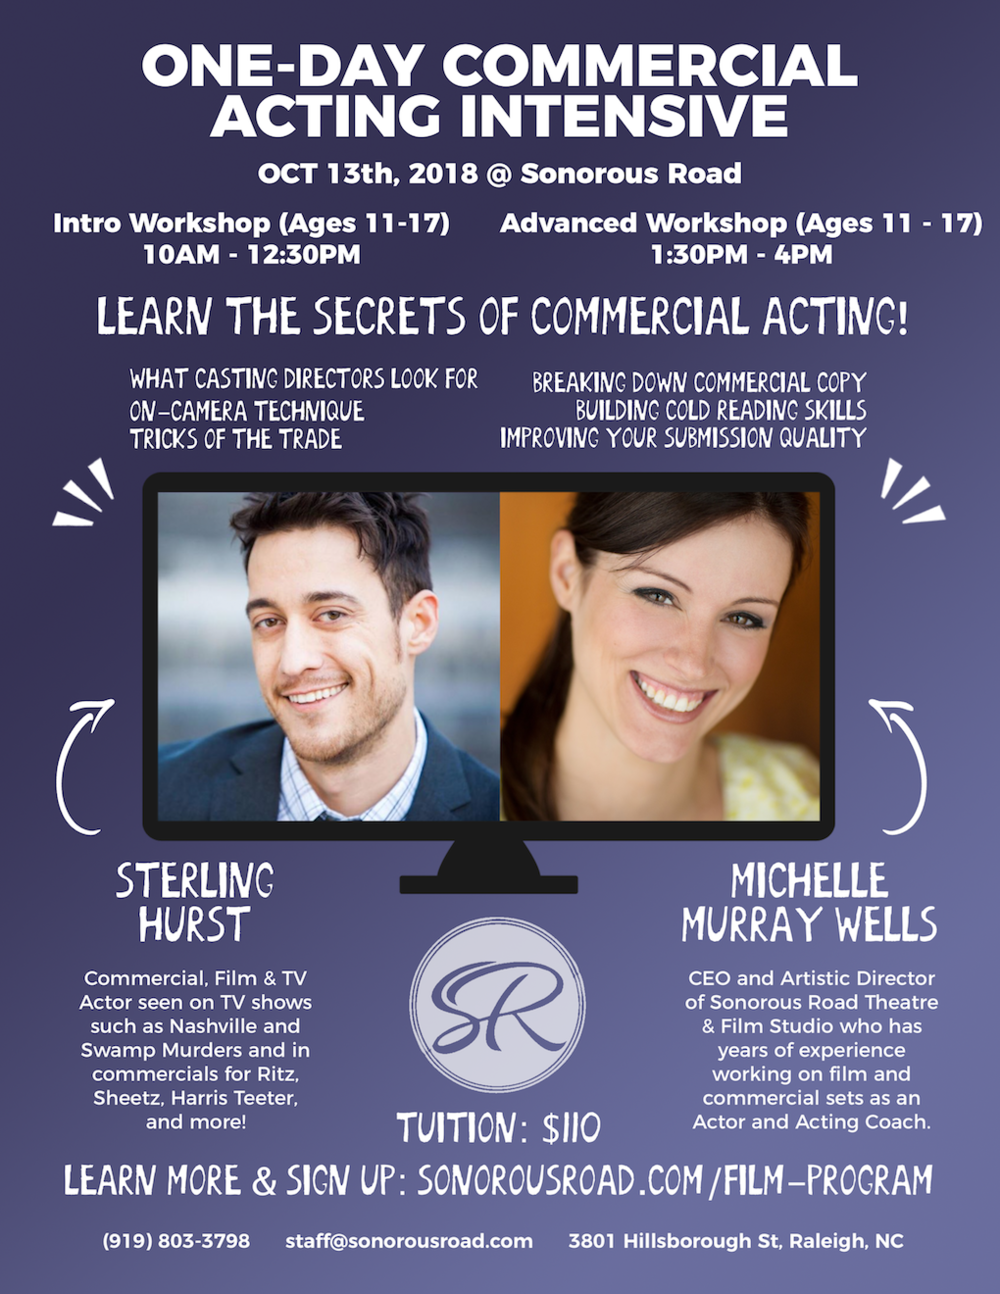 CommercialIntensive Oct 13th Web.png